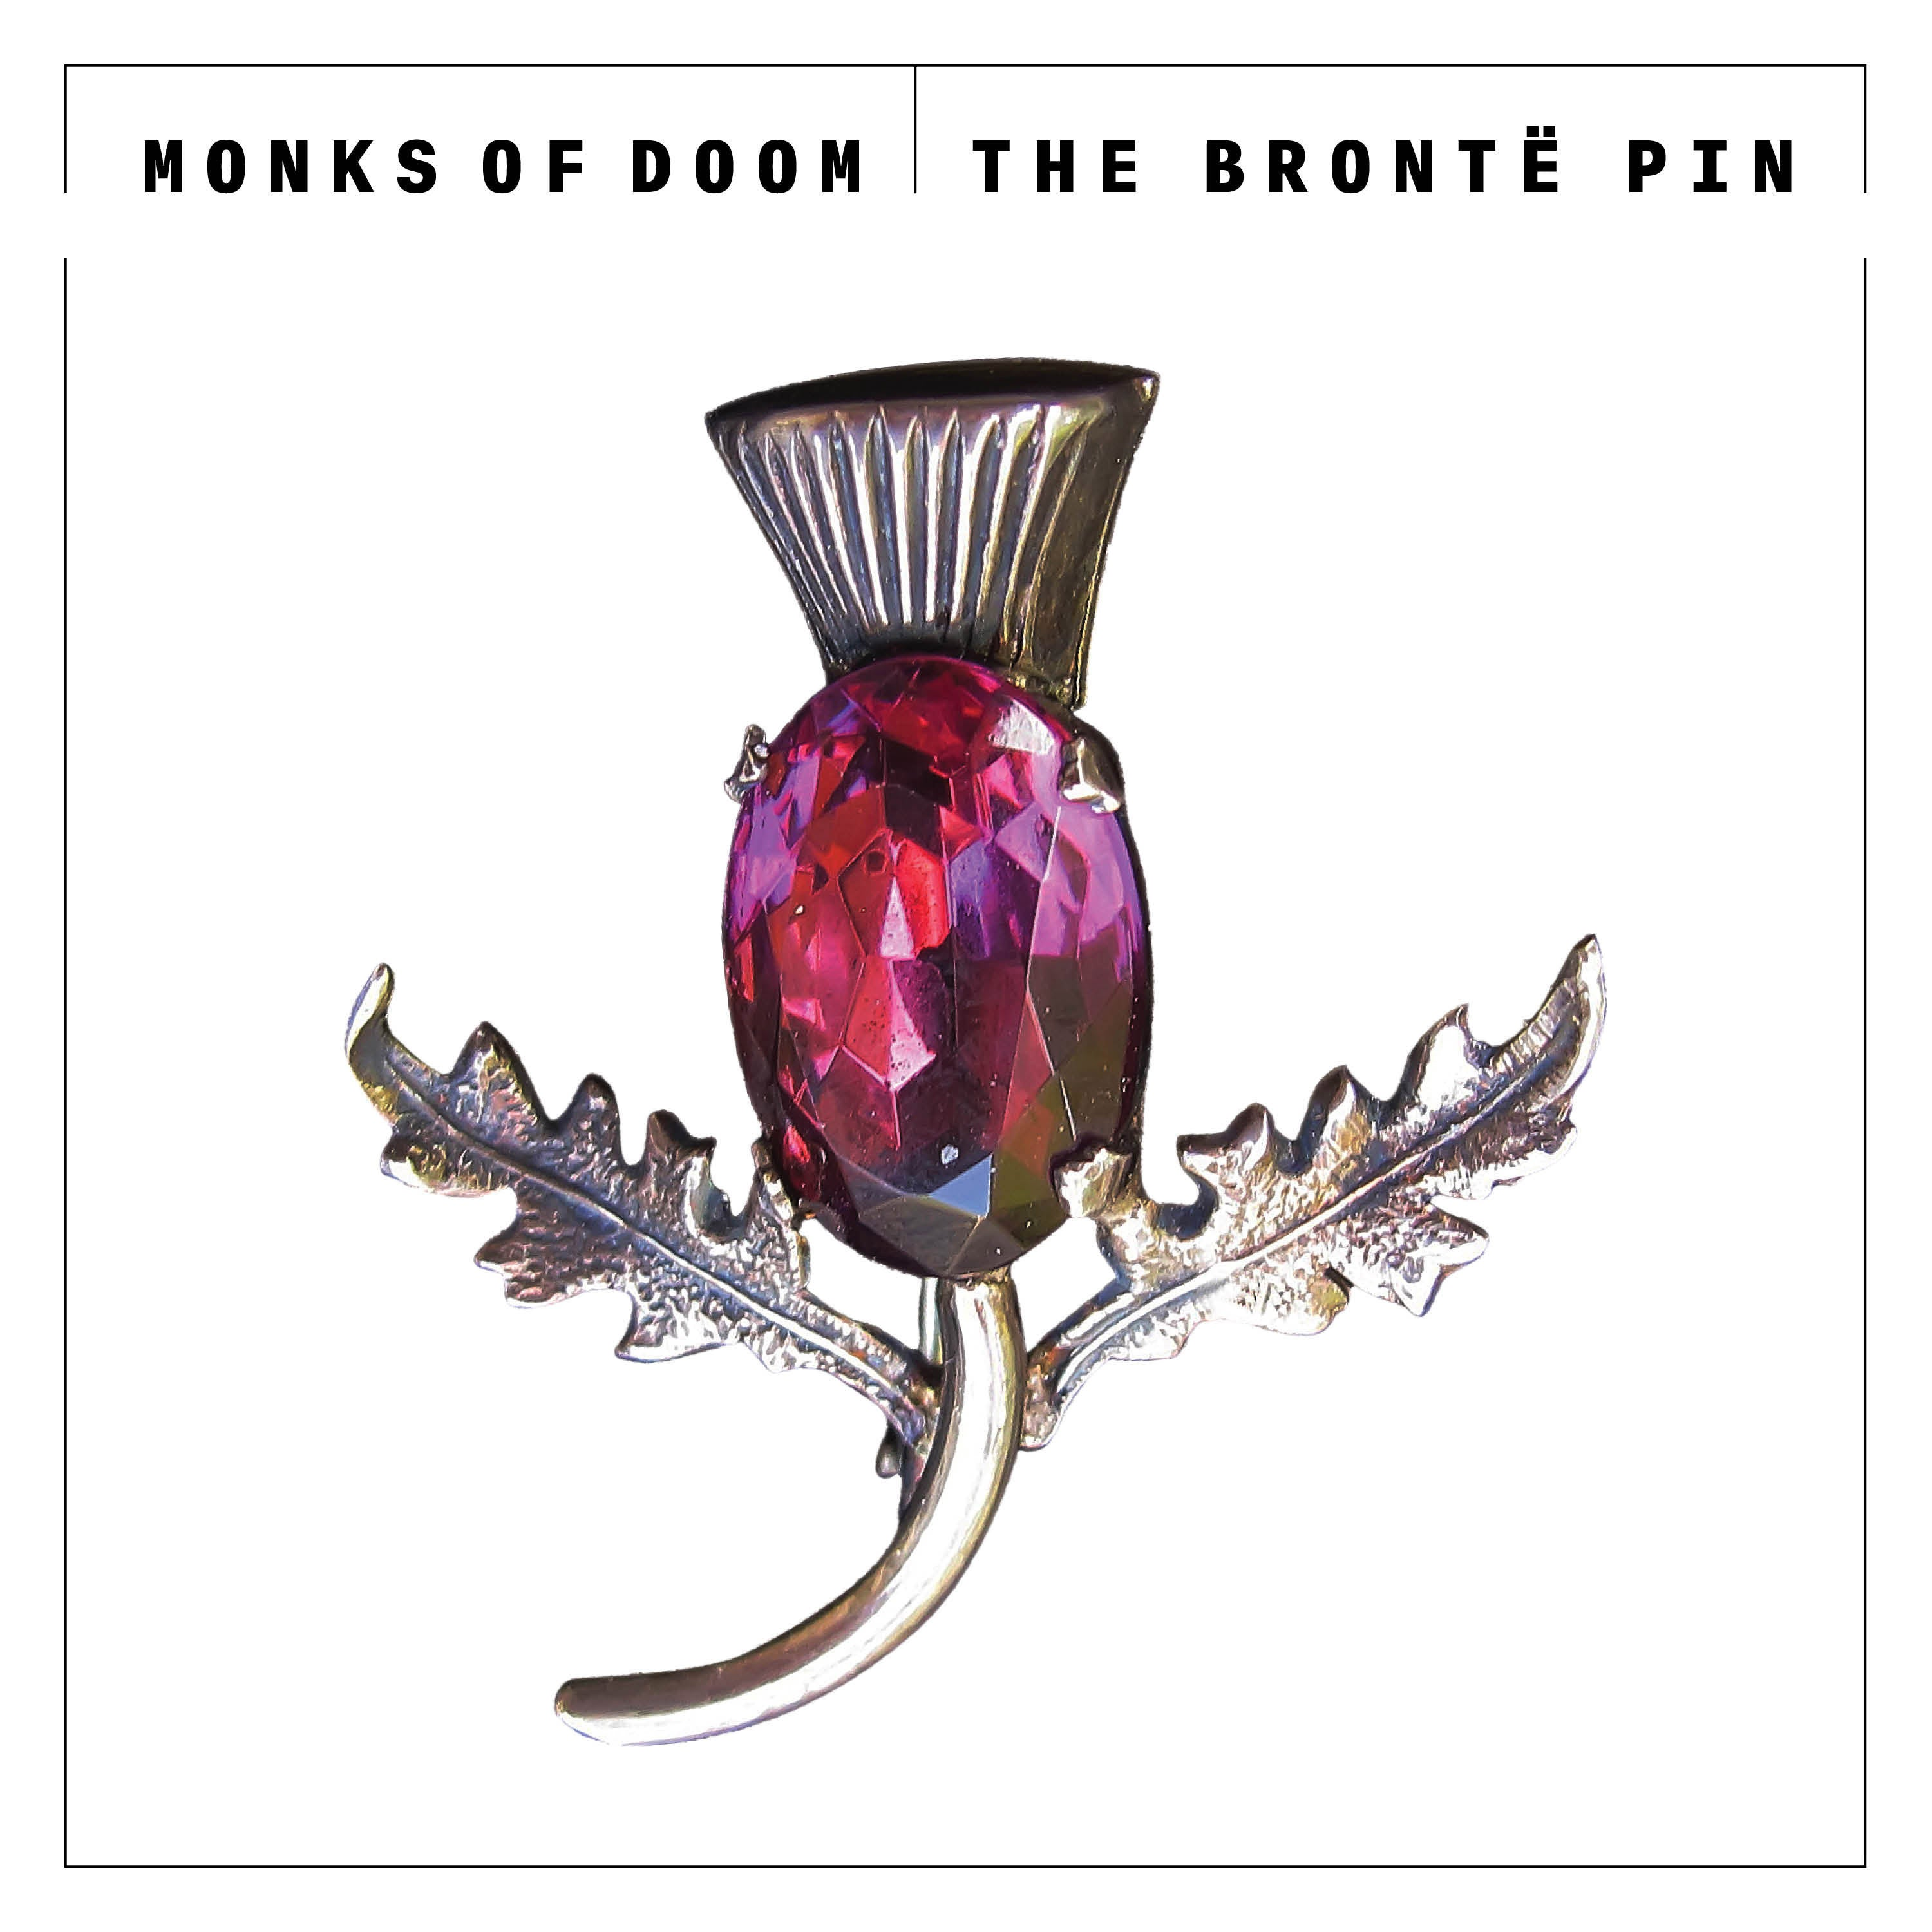 Monks of Doom - The Brontë Pin